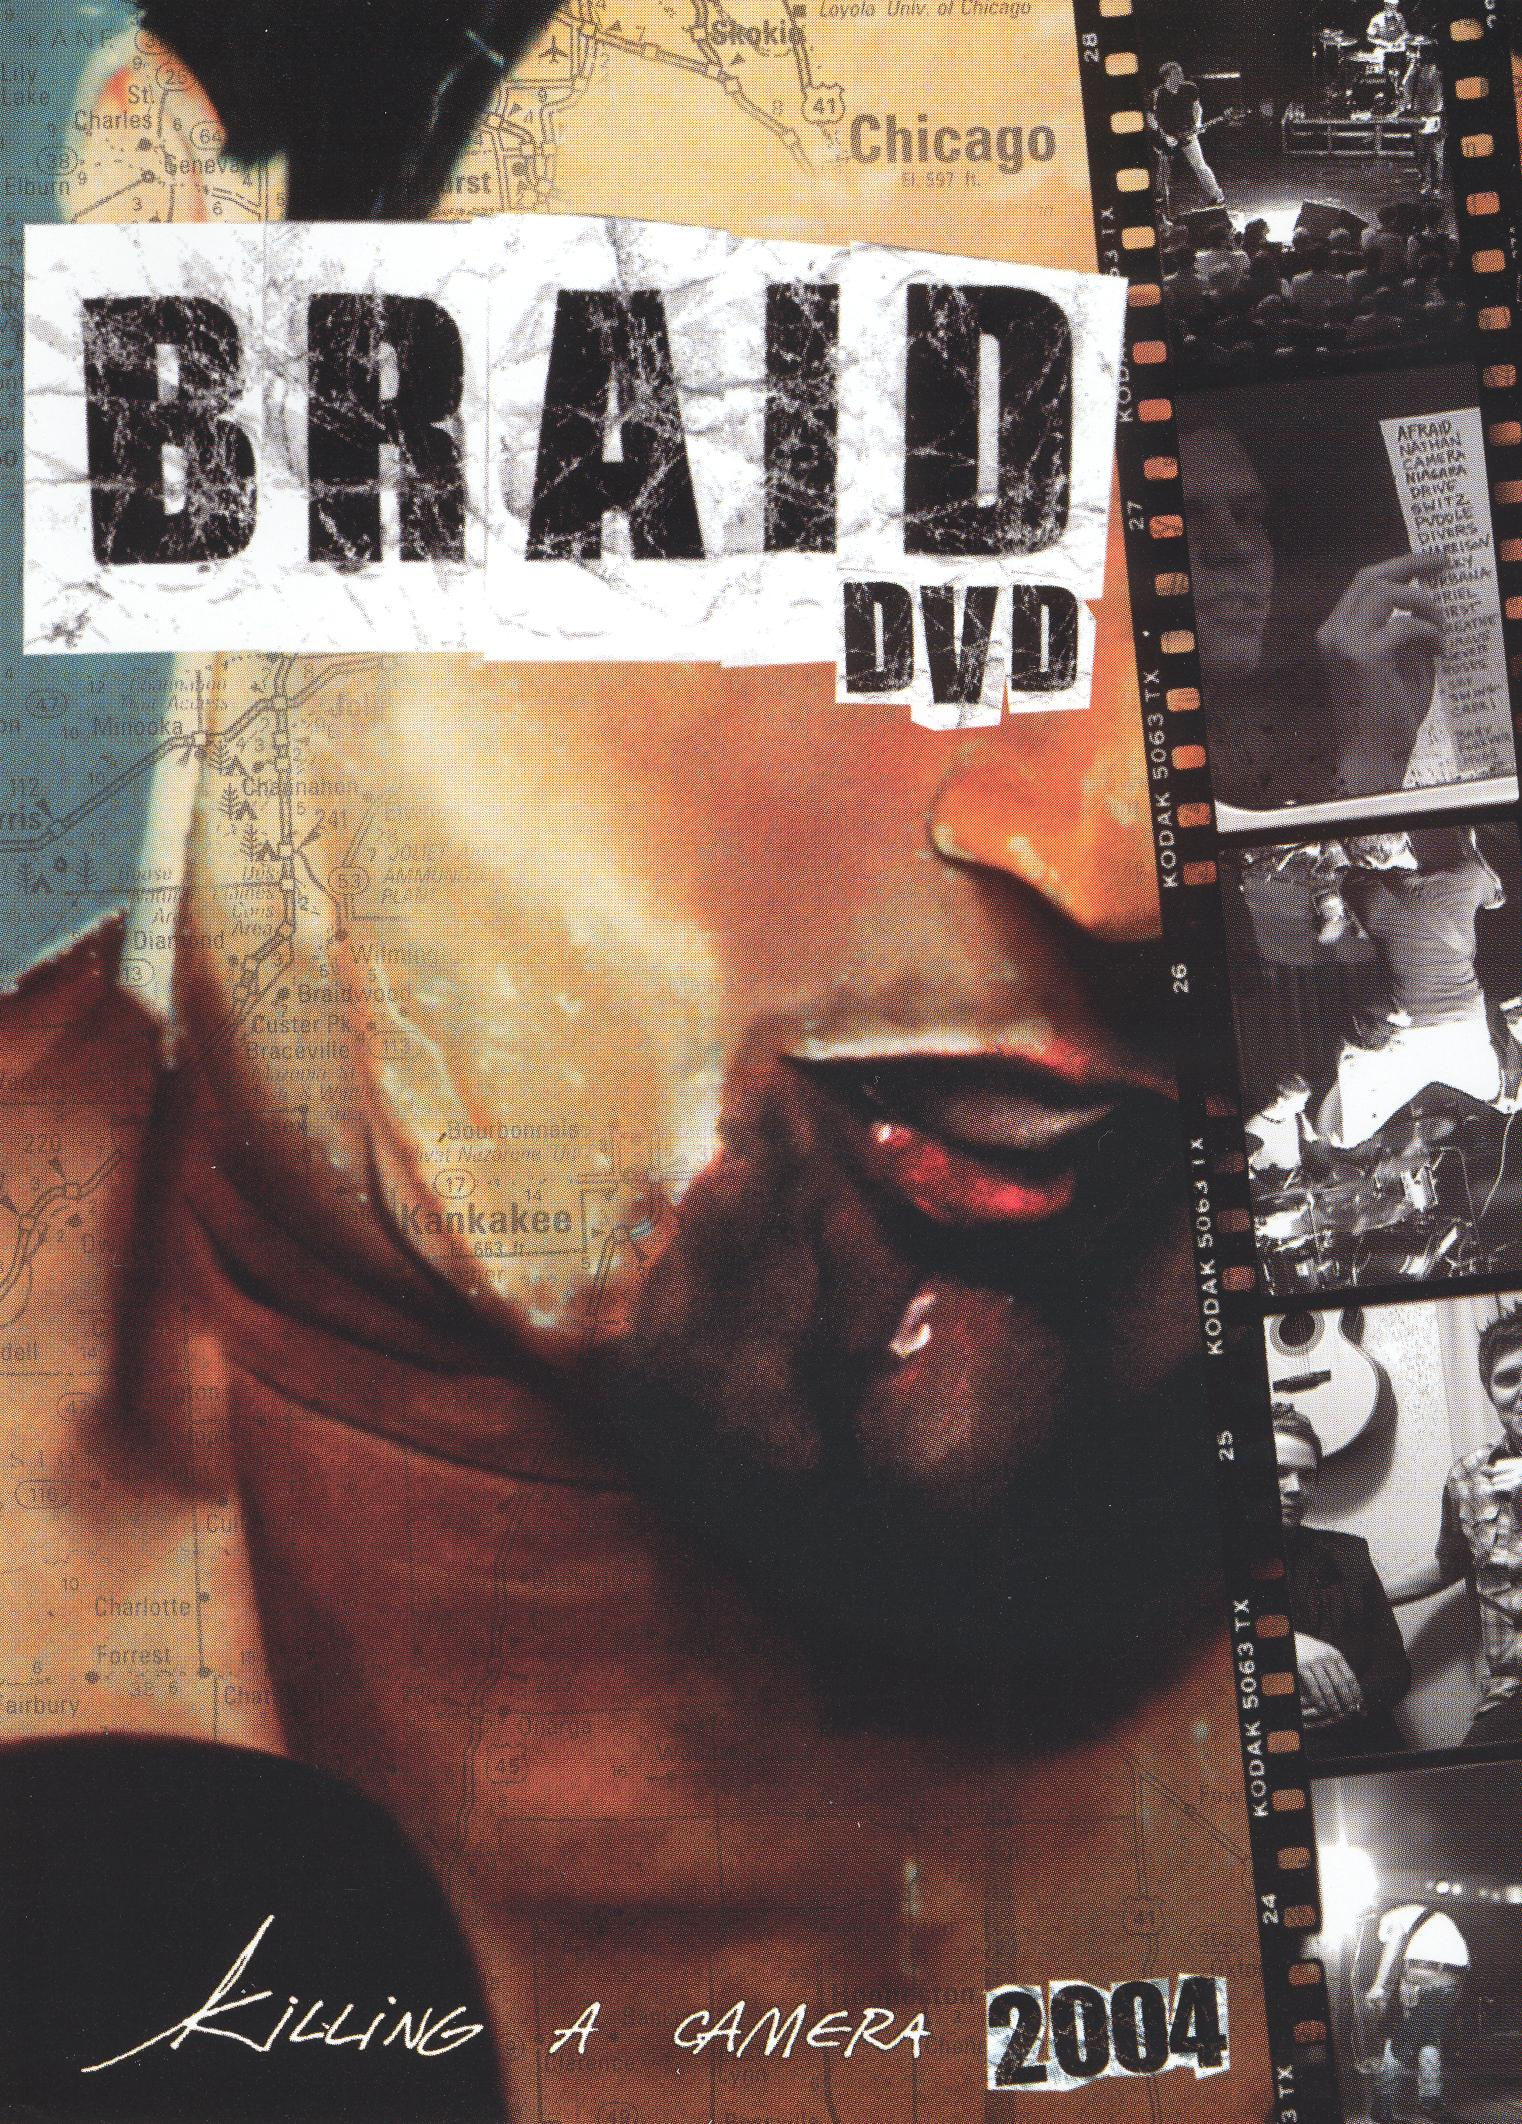 Braid: Killing a Camera 2004 Retrospective